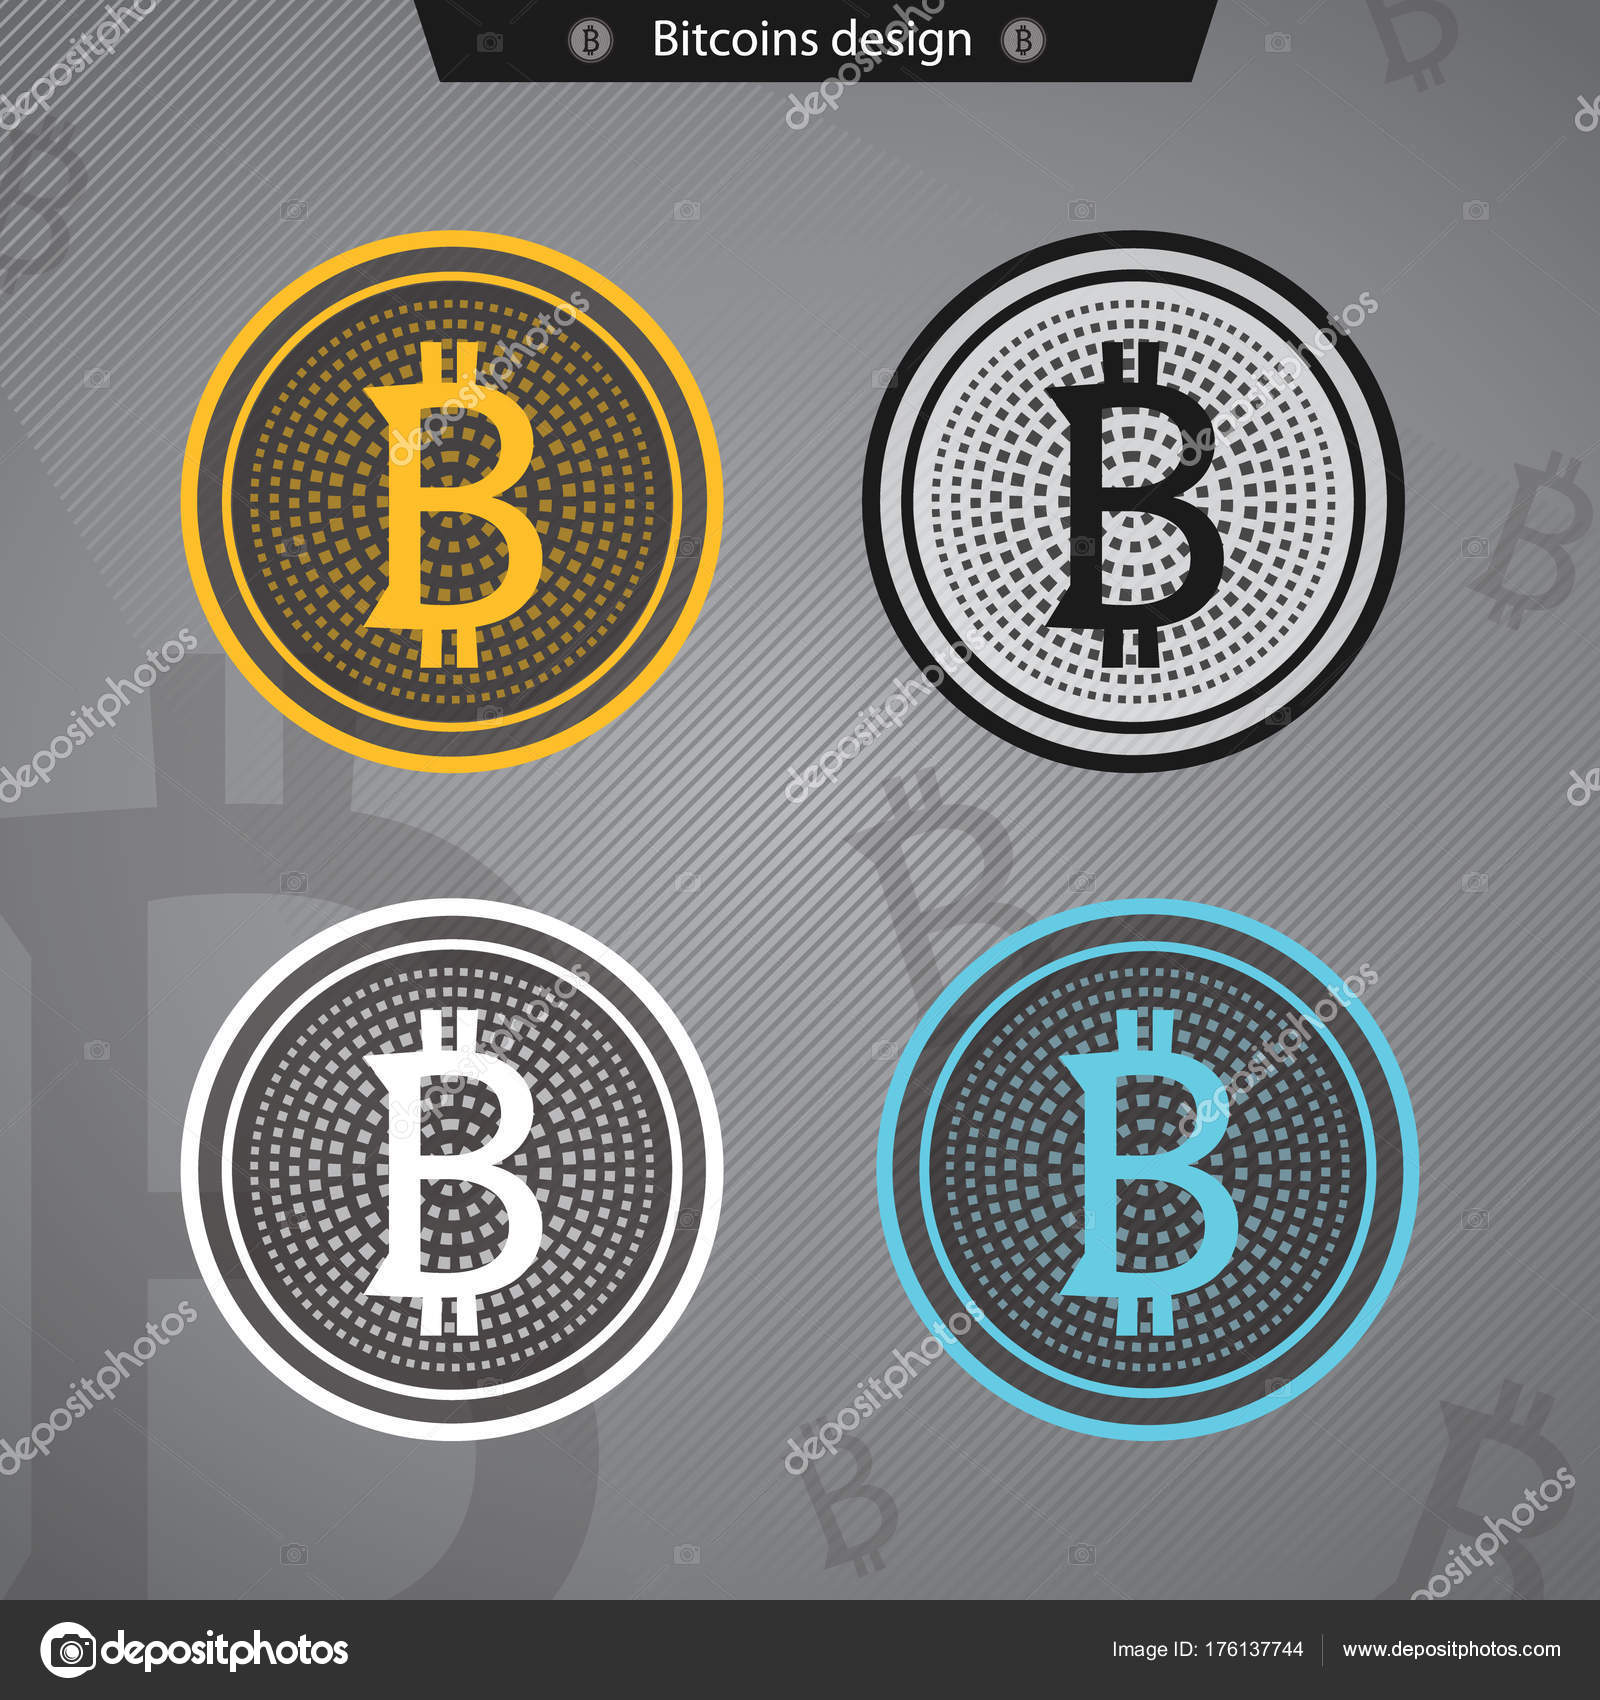 Bitcoin Icon Bit Coin Crypto Mining Logo Business Wallet Security Currency Exchange Vector Item Flat Virtual Payment Finance Symbol